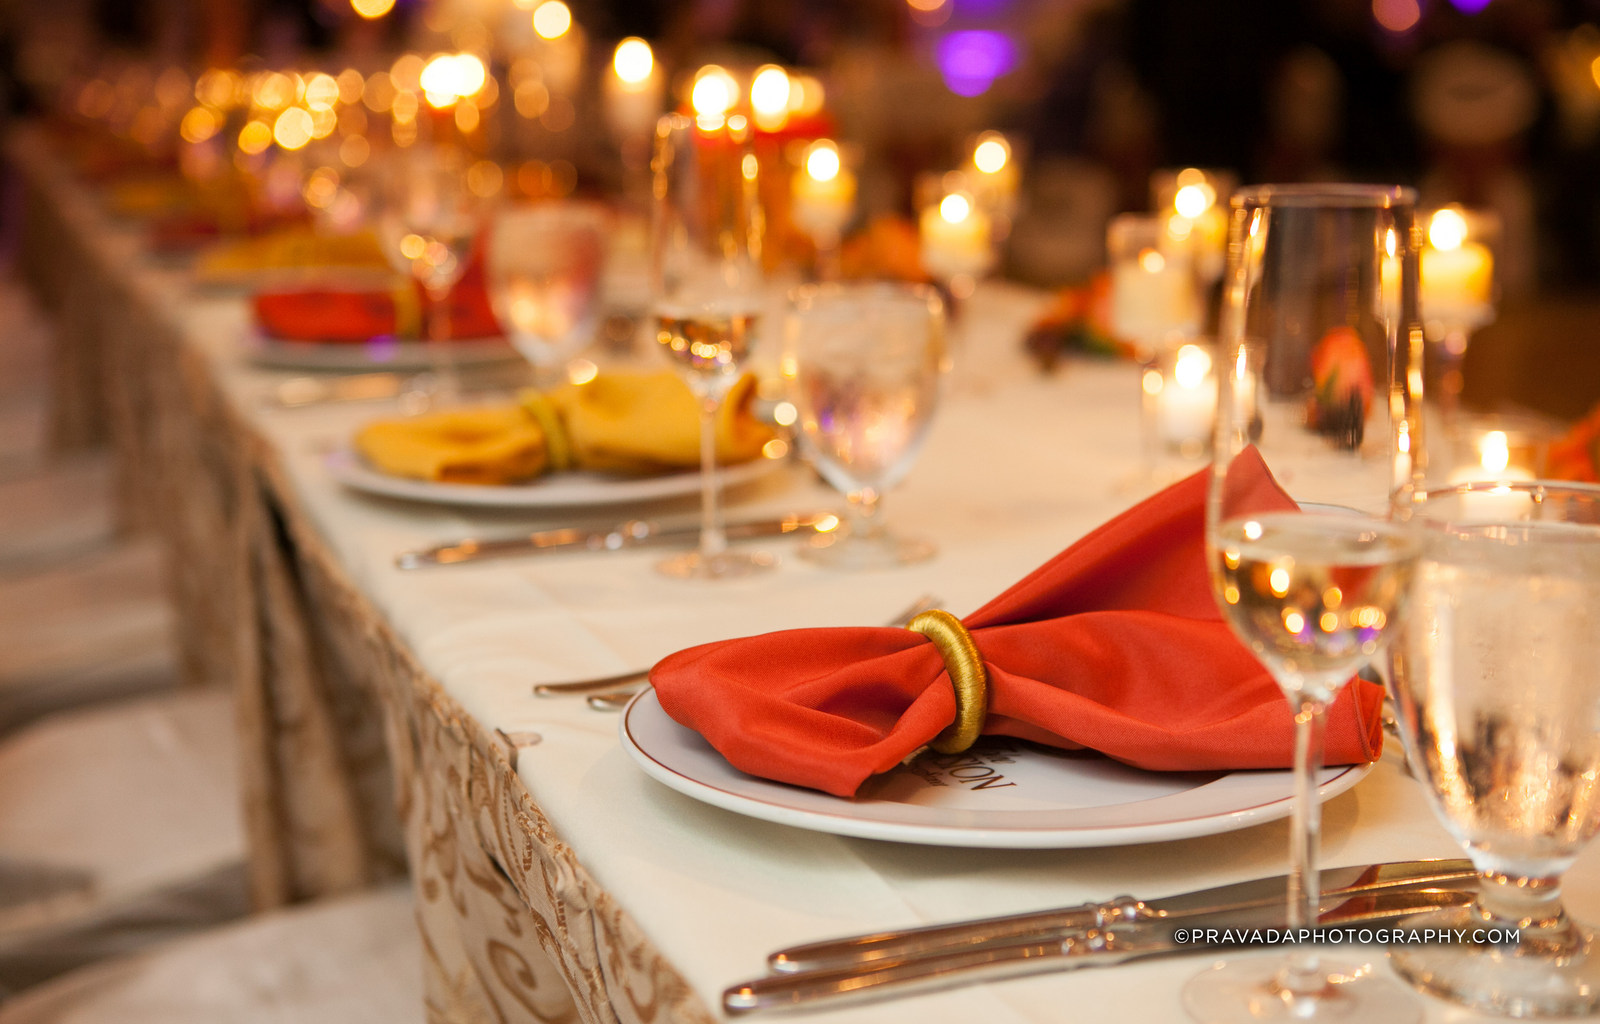 The Mansion on Main Street invites you to dine, dance and celebrate special moments with your loved ones, colleagues or charitable supports at our breathtaking venue.